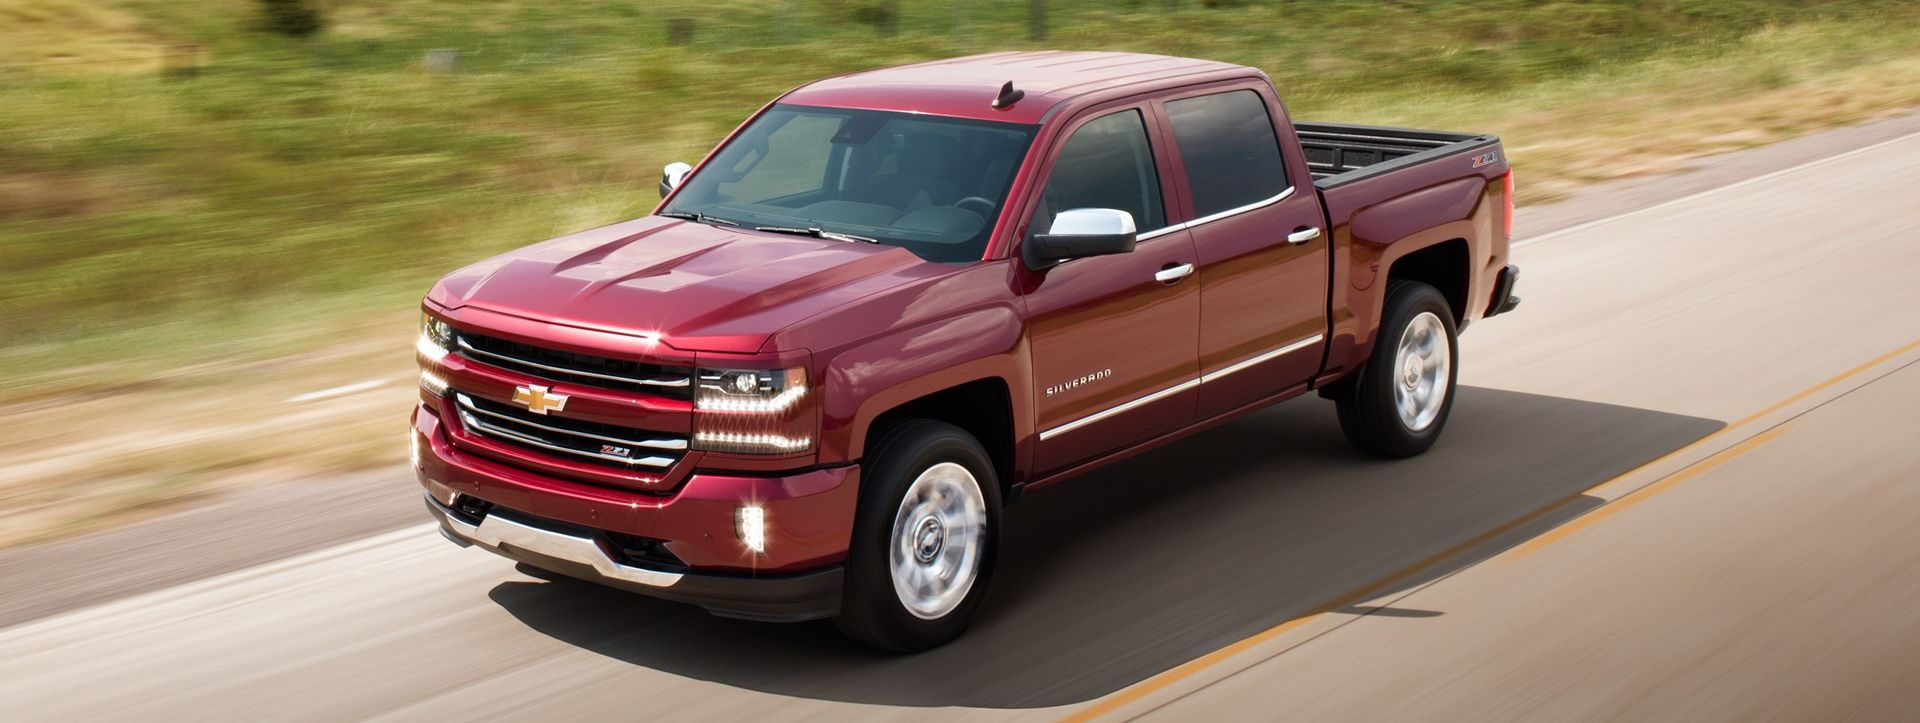 2017 Chevy Silverado 1500 for Sale in Highland, IN